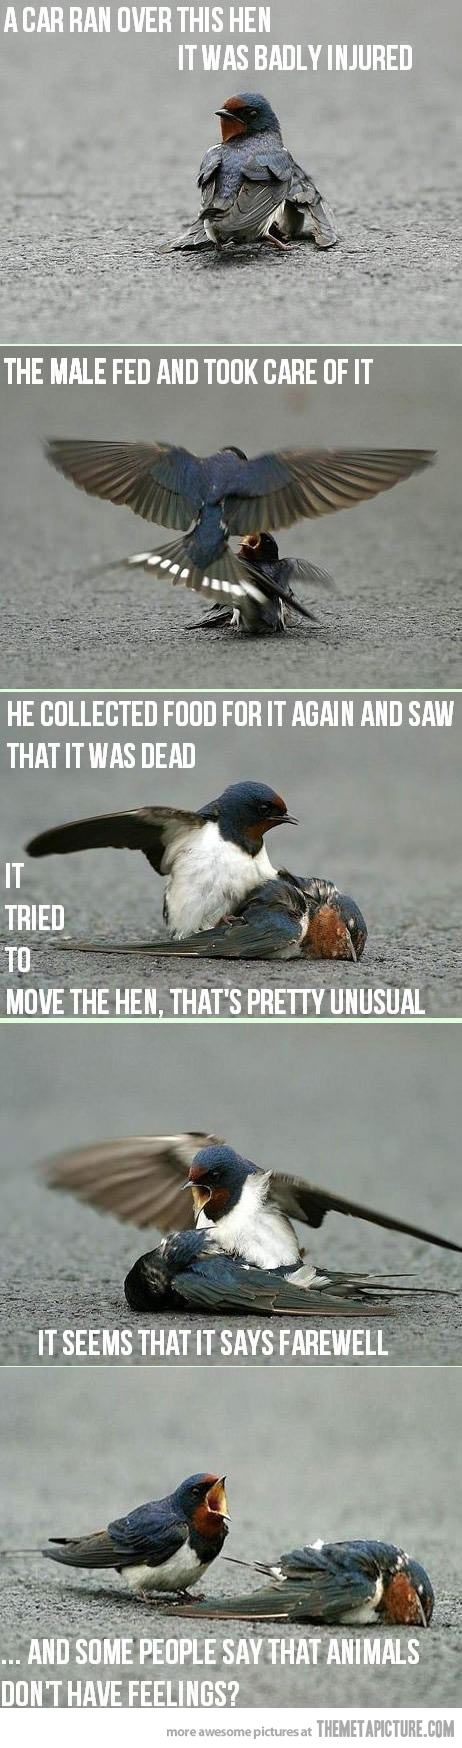 And some people say animals don't have feelings…or some idiot mistakes a bird having sex with a dead bird as caring.